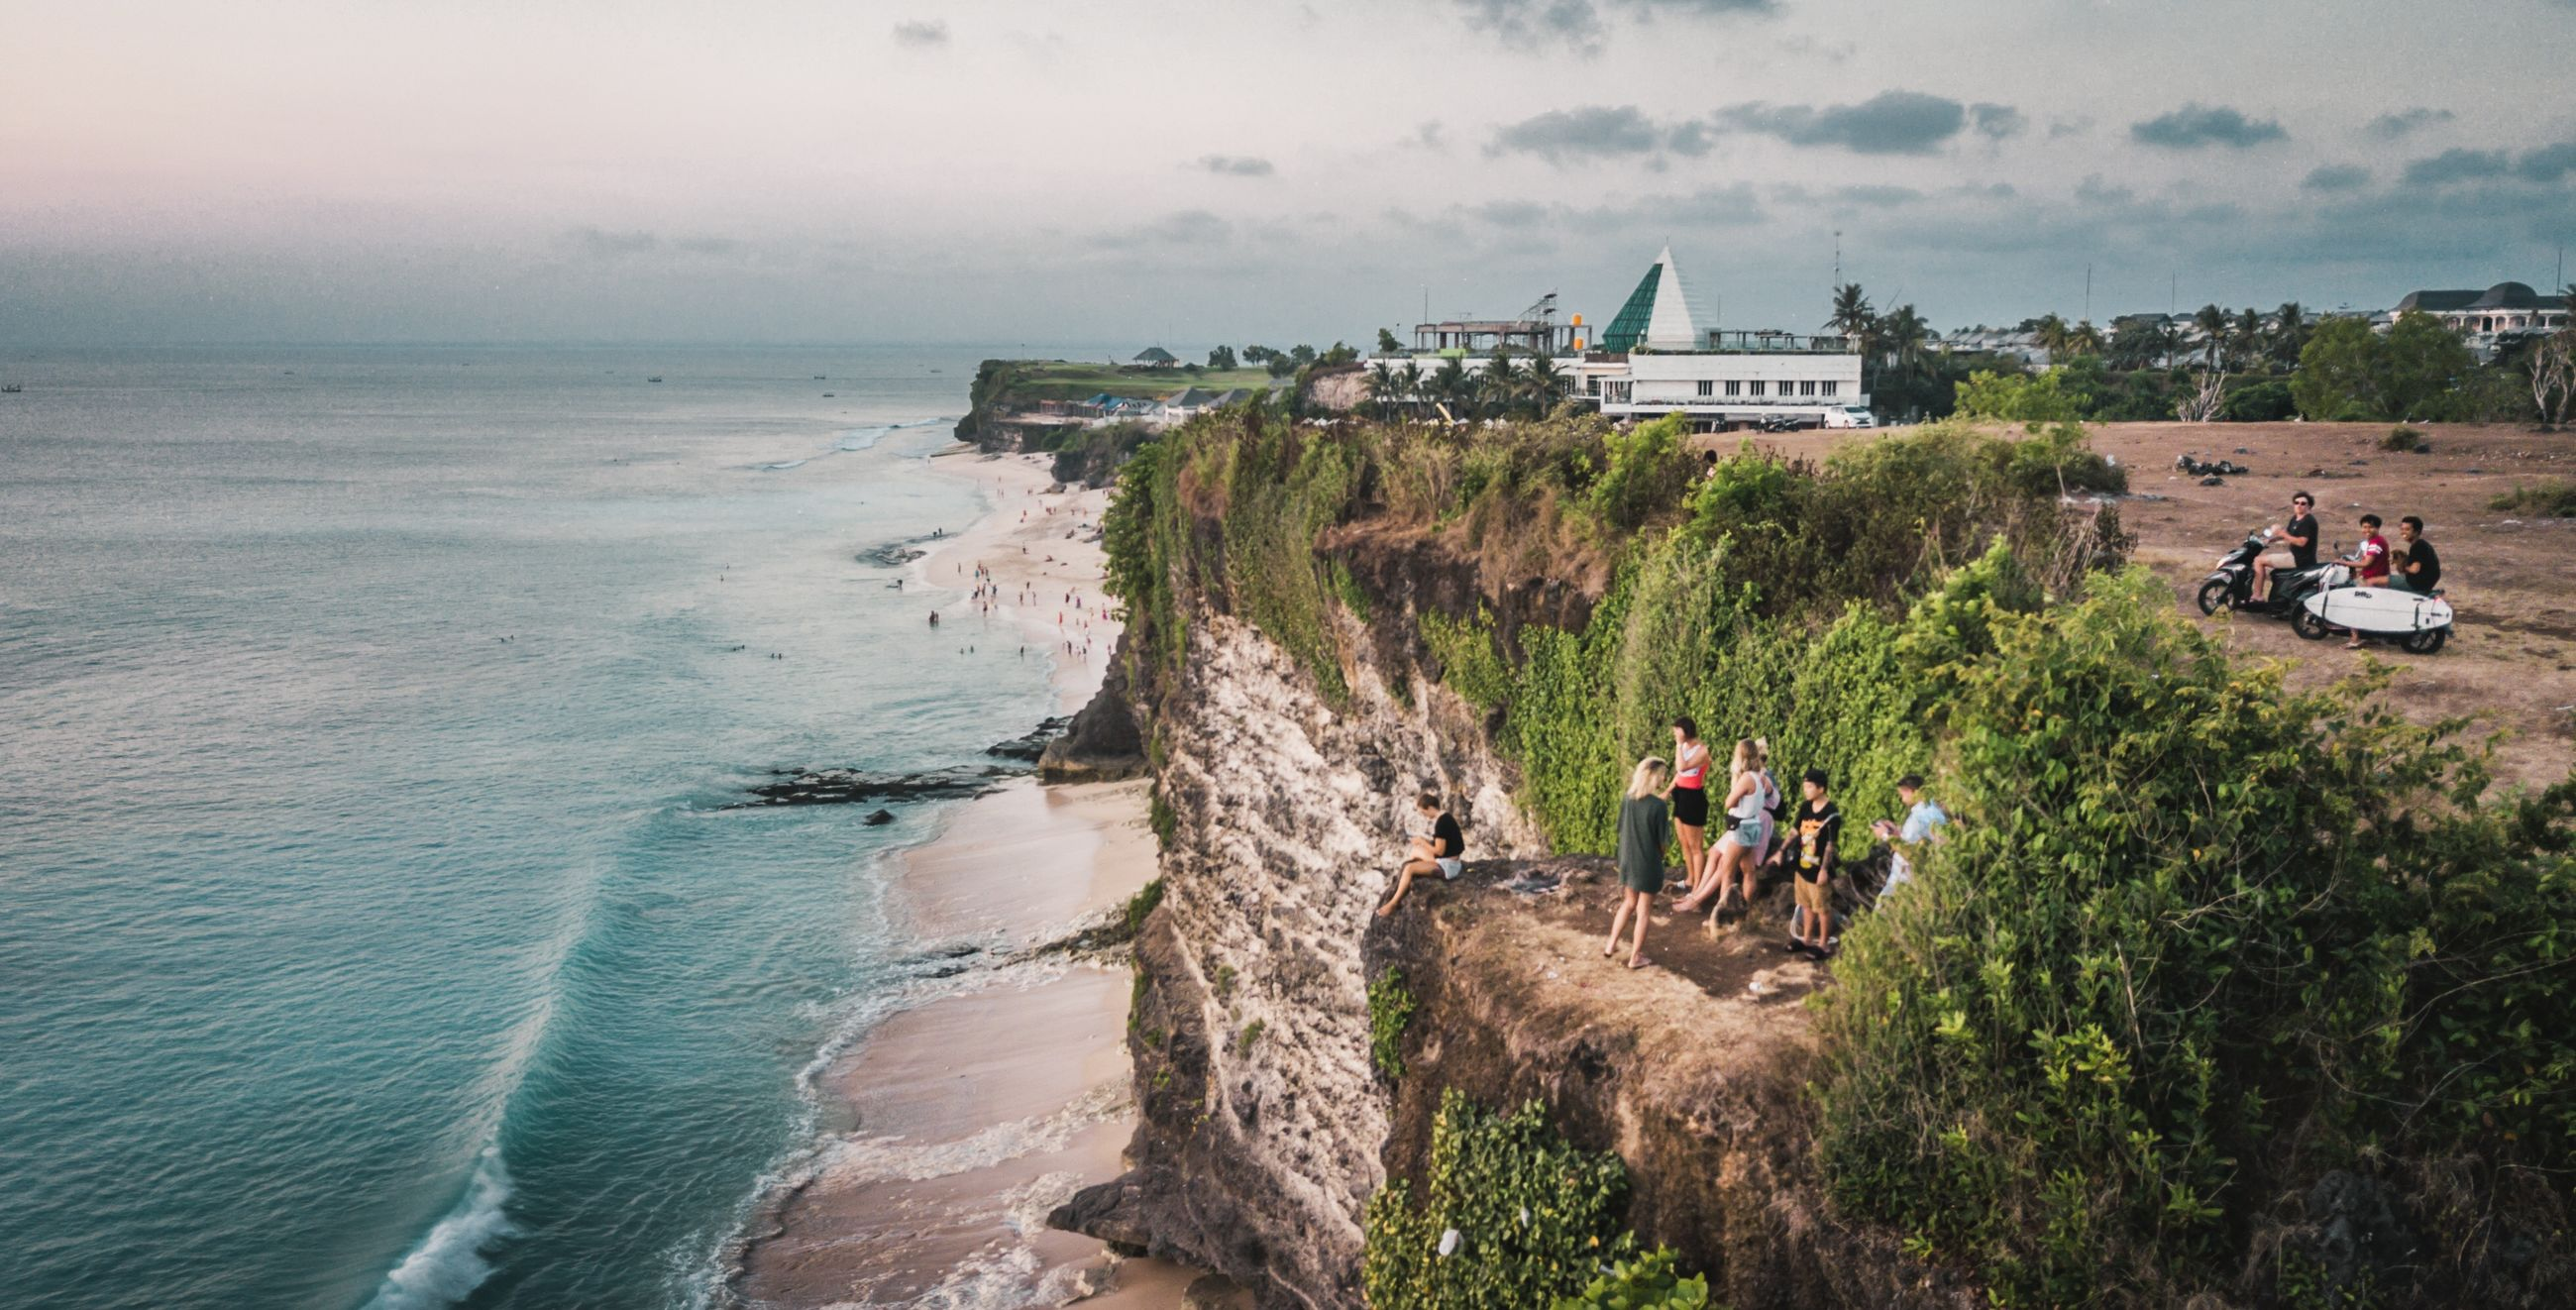 sea, water, land, sky, beach, architecture, group of people, nature, scenics - nature, real people, beauty in nature, men, built structure, people, building exterior, motion, day, cloud - sky, plant, horizon over water, outdoors